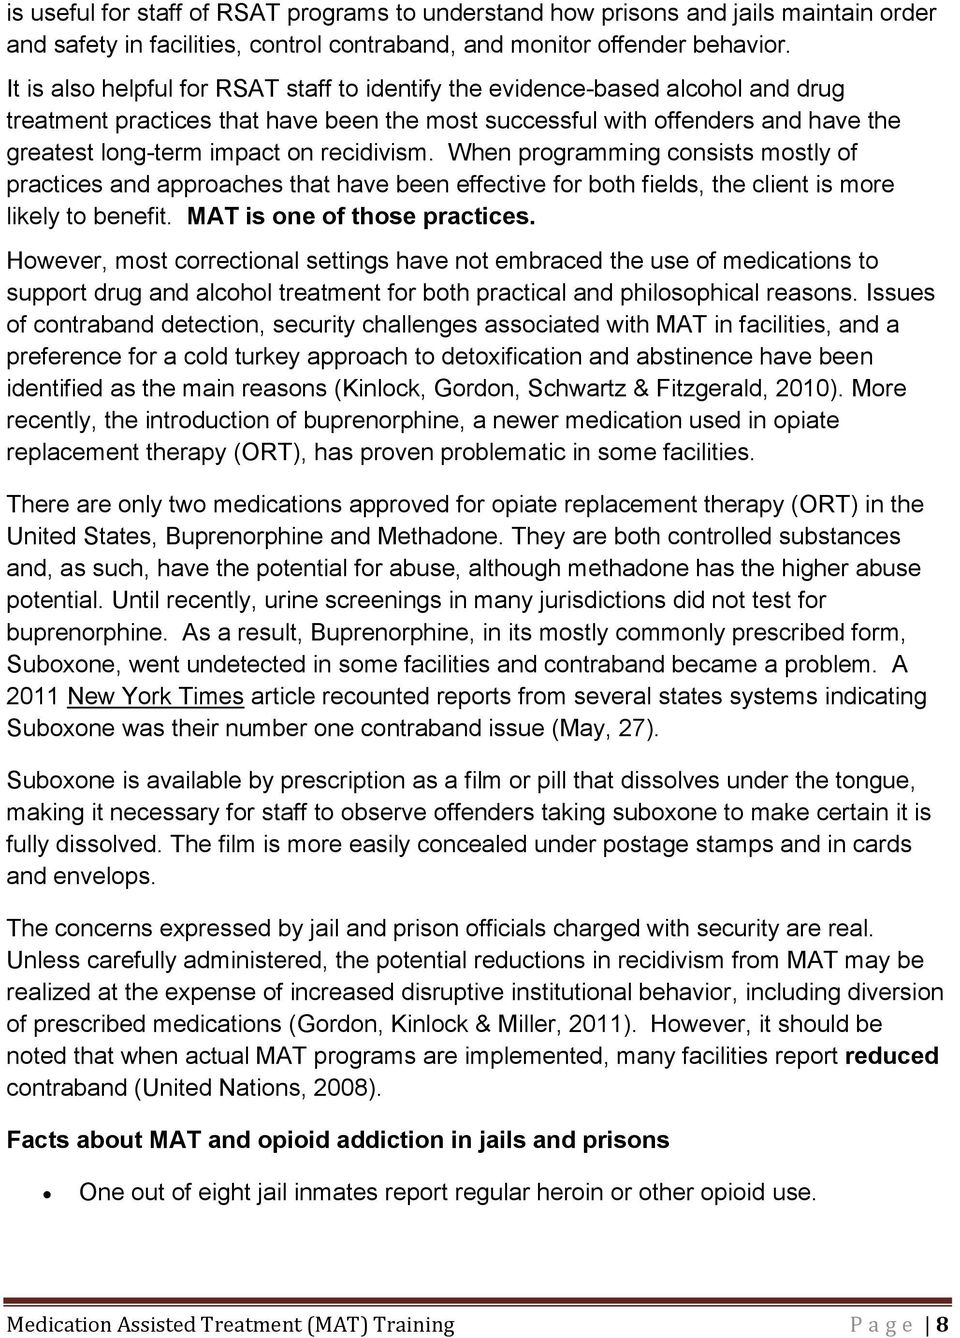 recidivism. When programming consists mostly of practices and approaches that have been effective for both fields, the client is more likely to benefit. MAT is one of those practices.